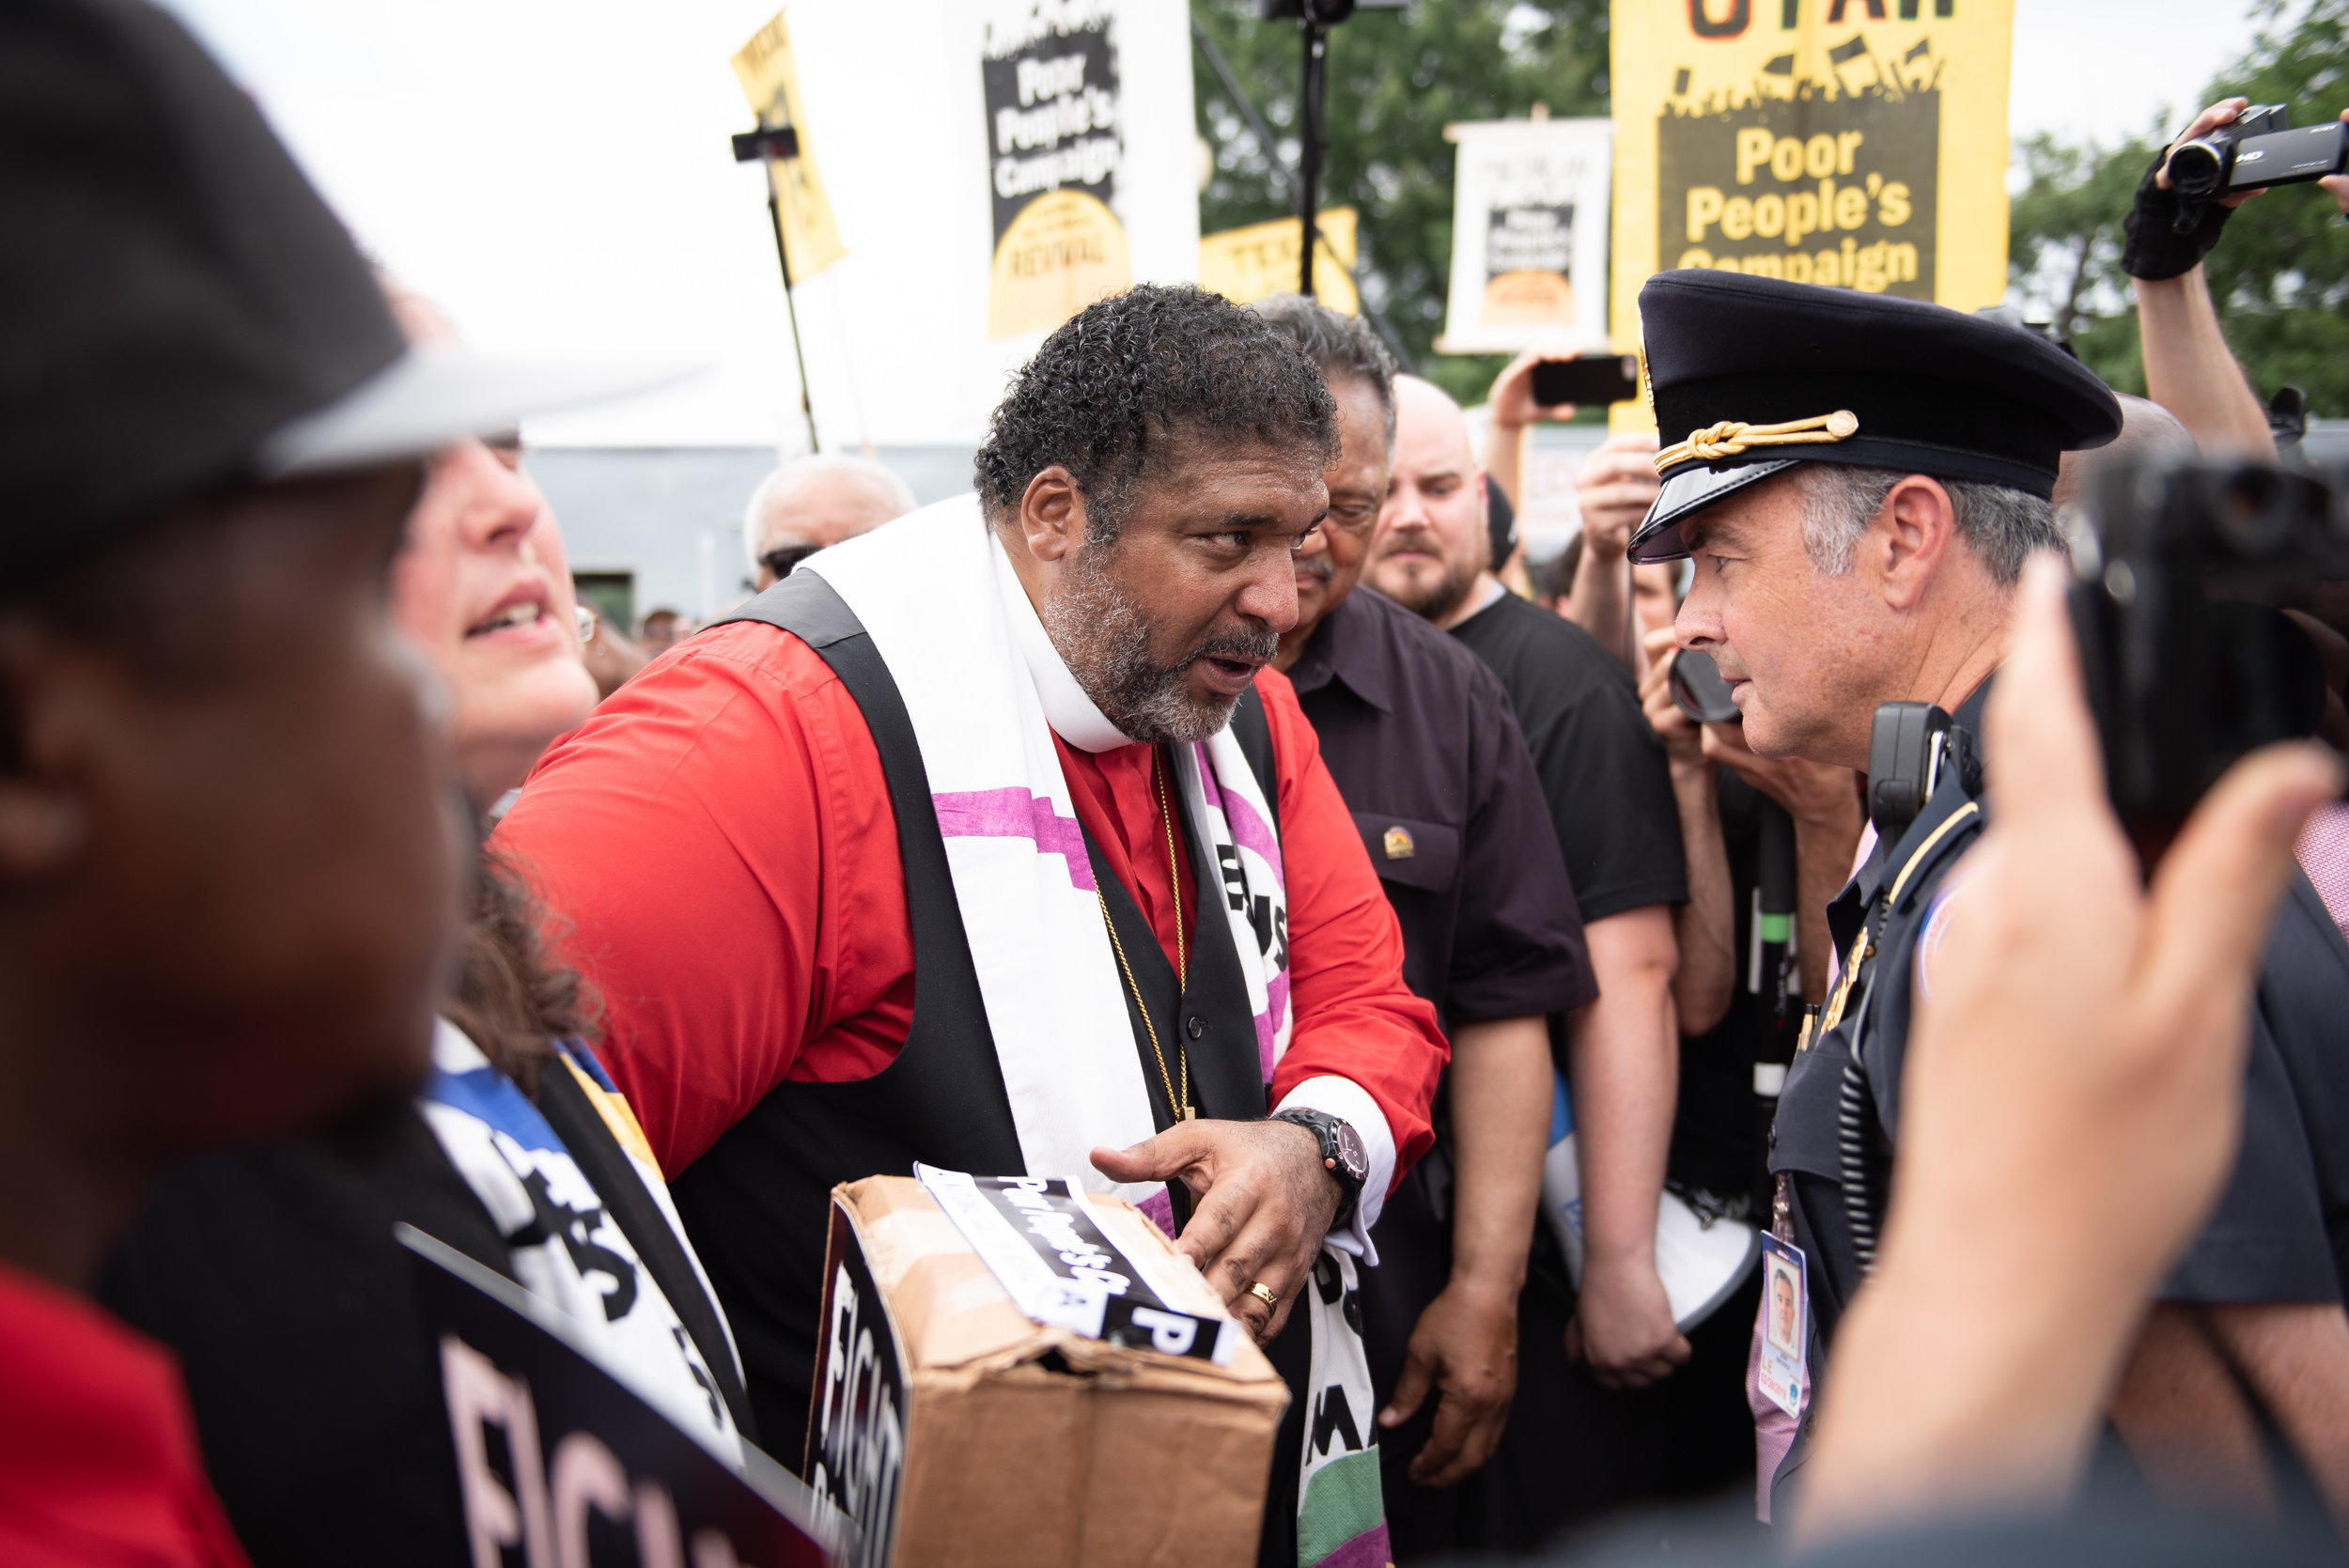 Rally and march for the Poor People's Campaign on June 23rd, 2018 in Washington, DC.